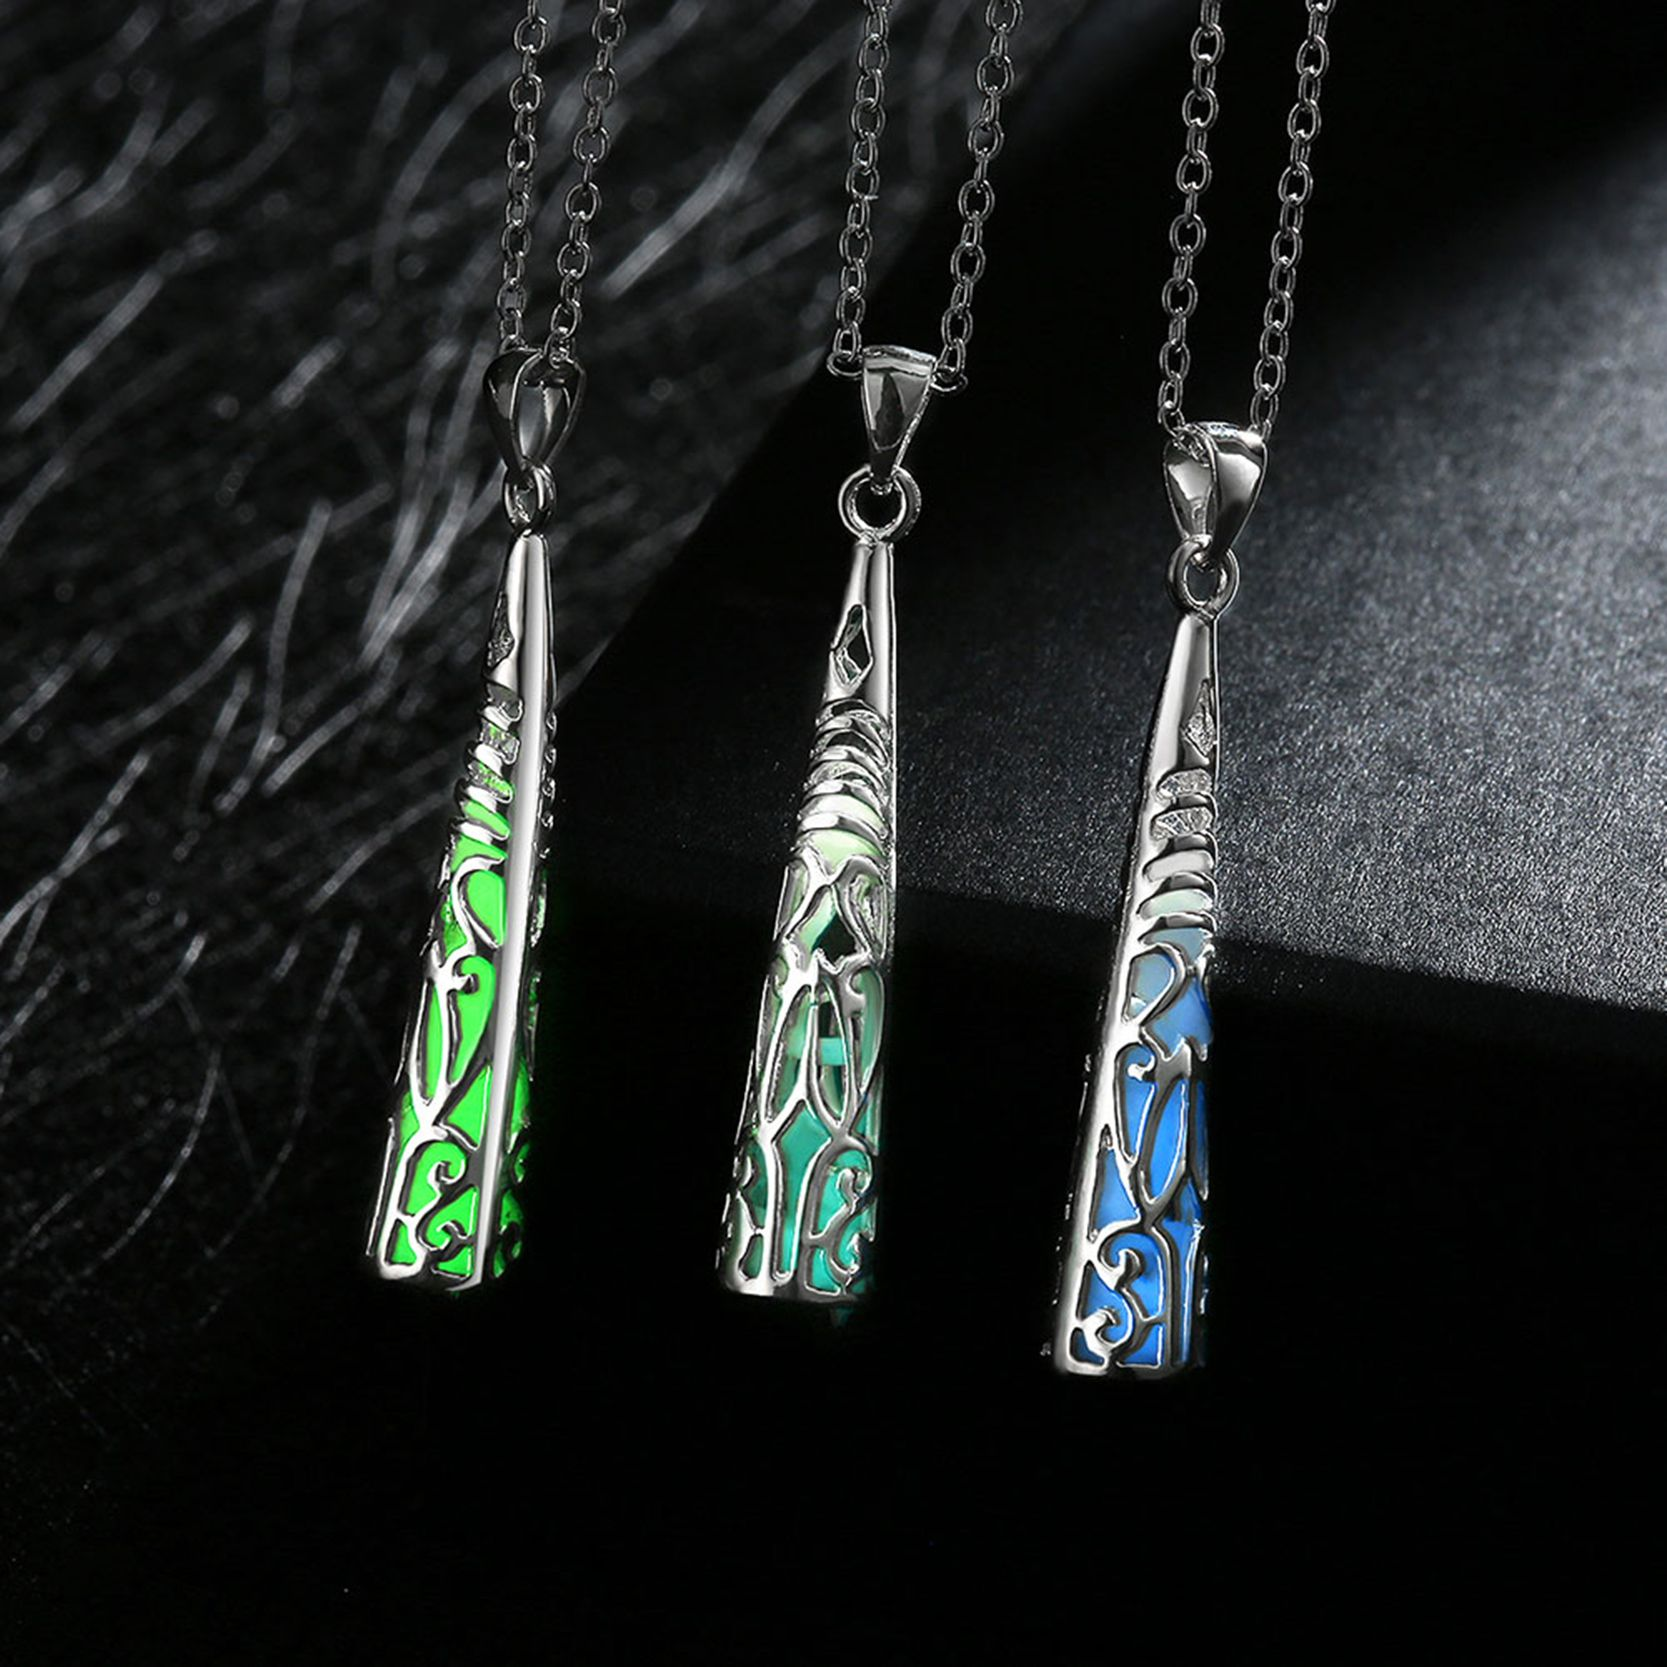 New silver plated chain night necklaces phosphors geometric new silver plated chain night necklaces phosphors geometric glowing in dark pendant choker necklace jewelry for mozeypictures Images